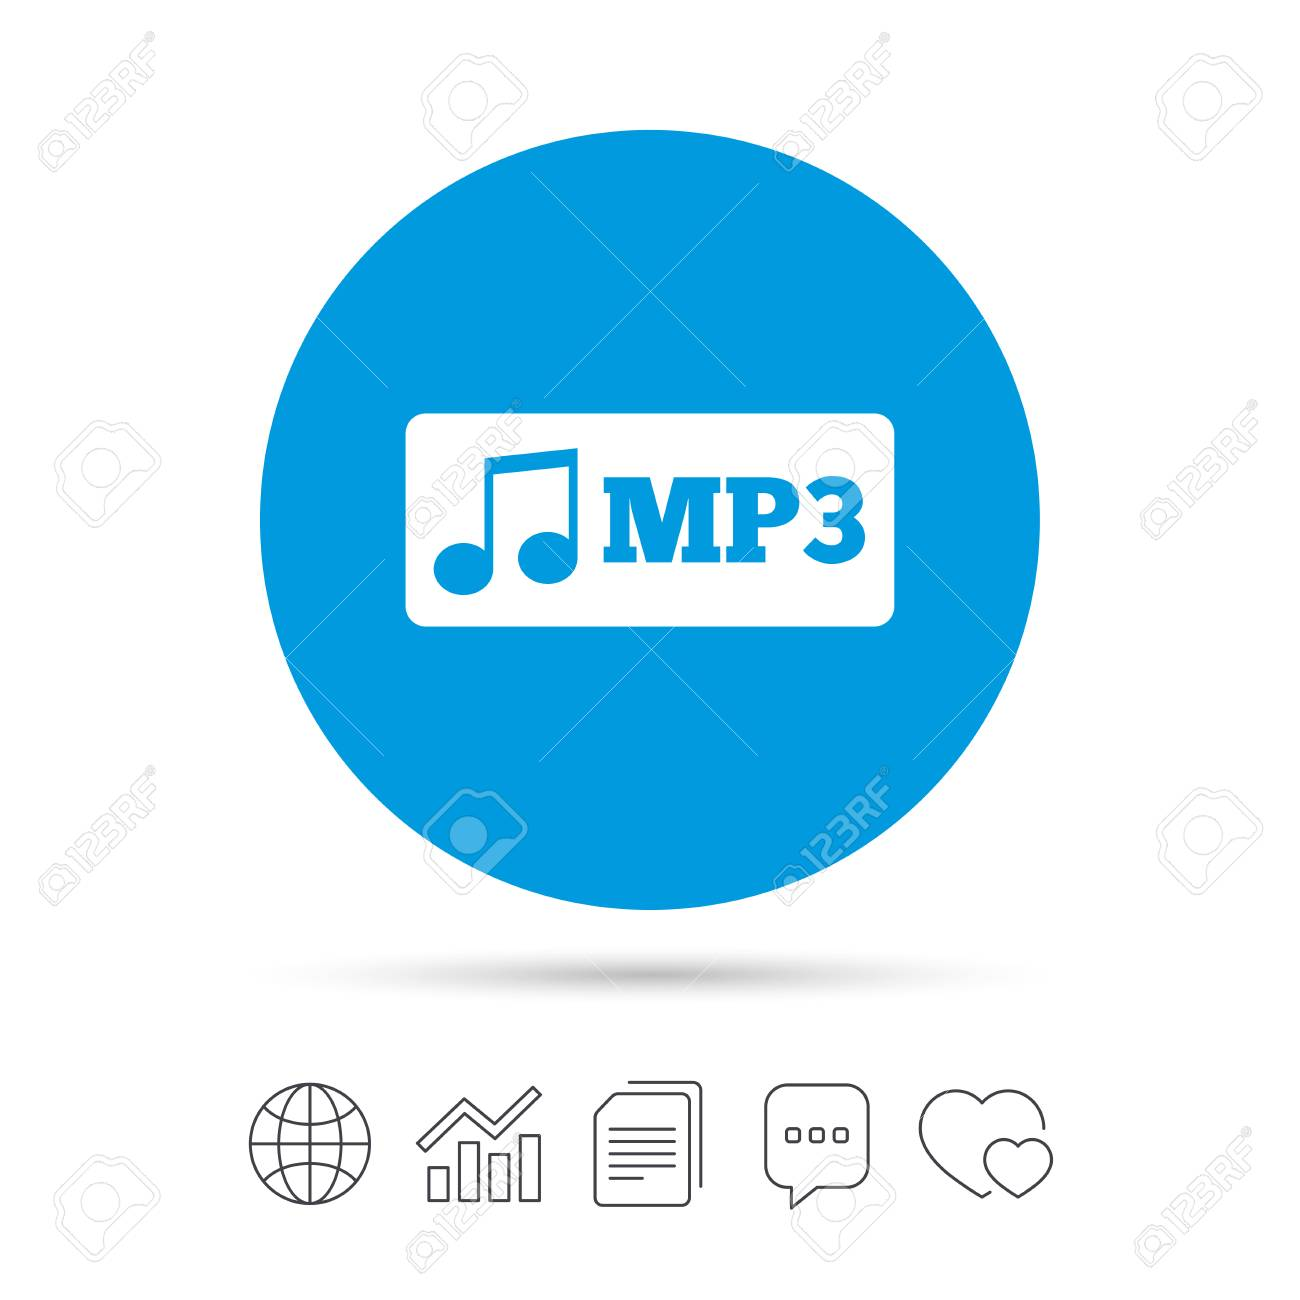 Mp3 music format sign icon  Musical symbol  Copy files, chat